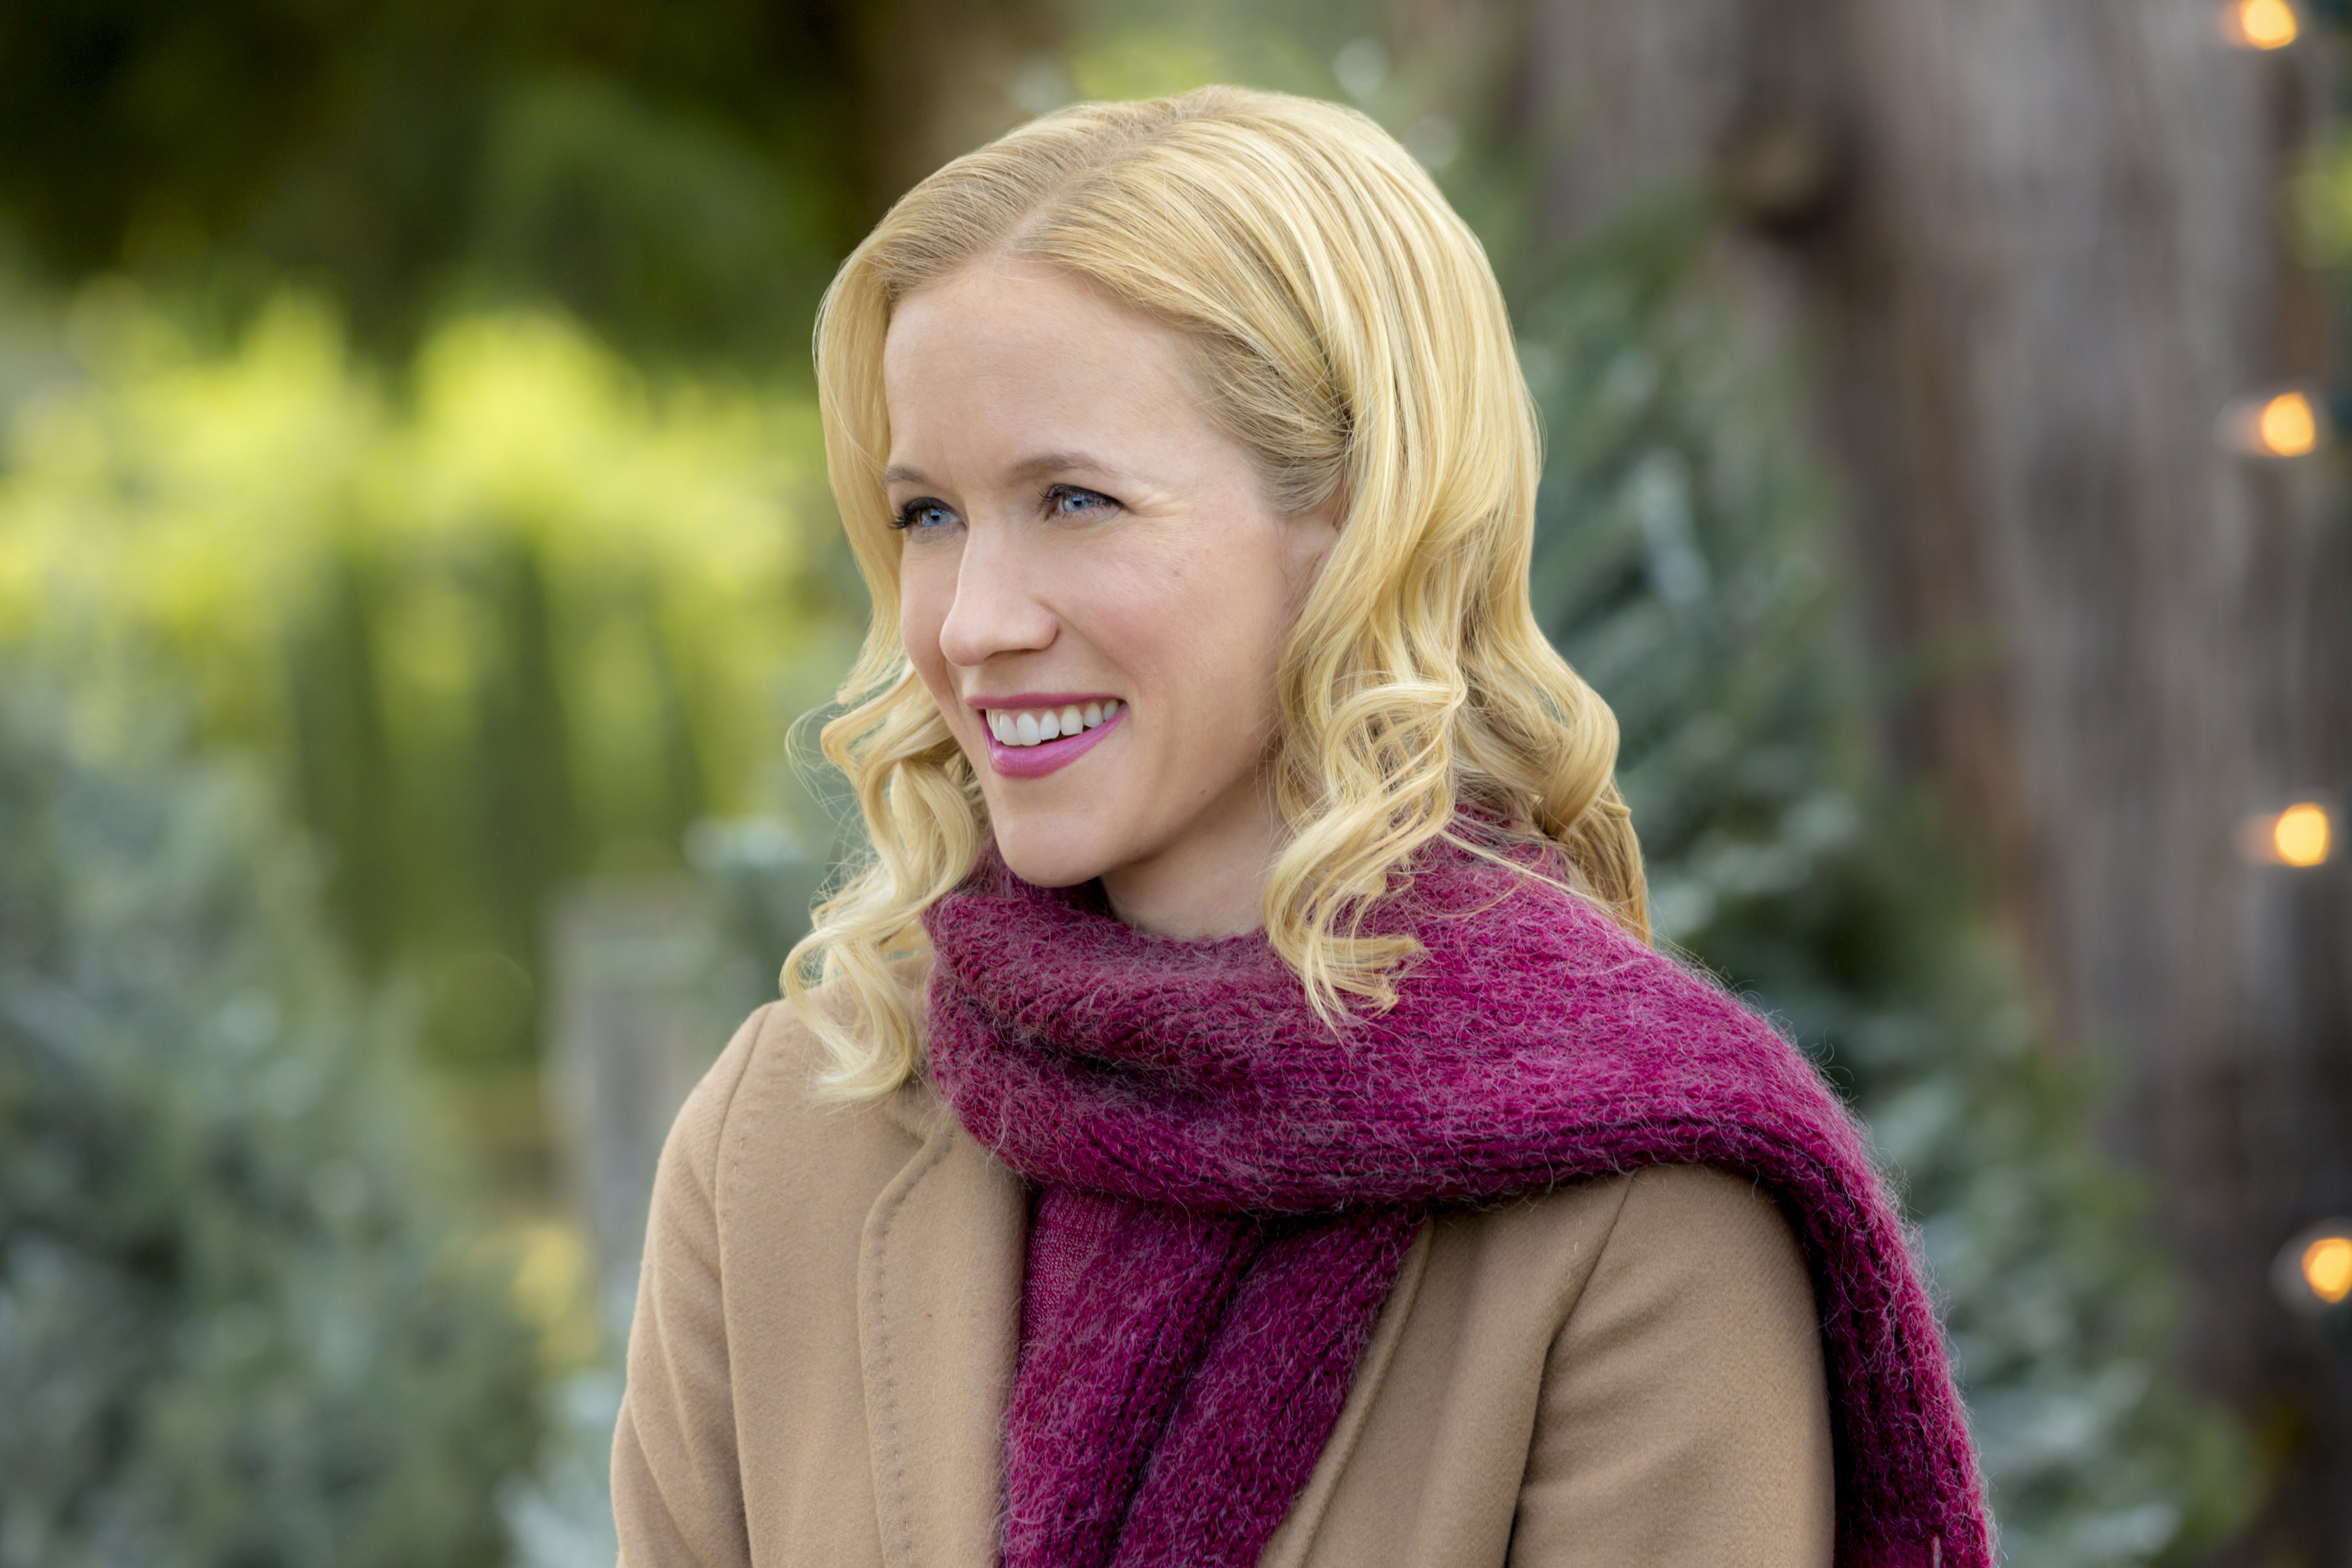 Cast Of Road To Christmas  2020 Jessy Schram as Maggie Baker on Road to Christmas